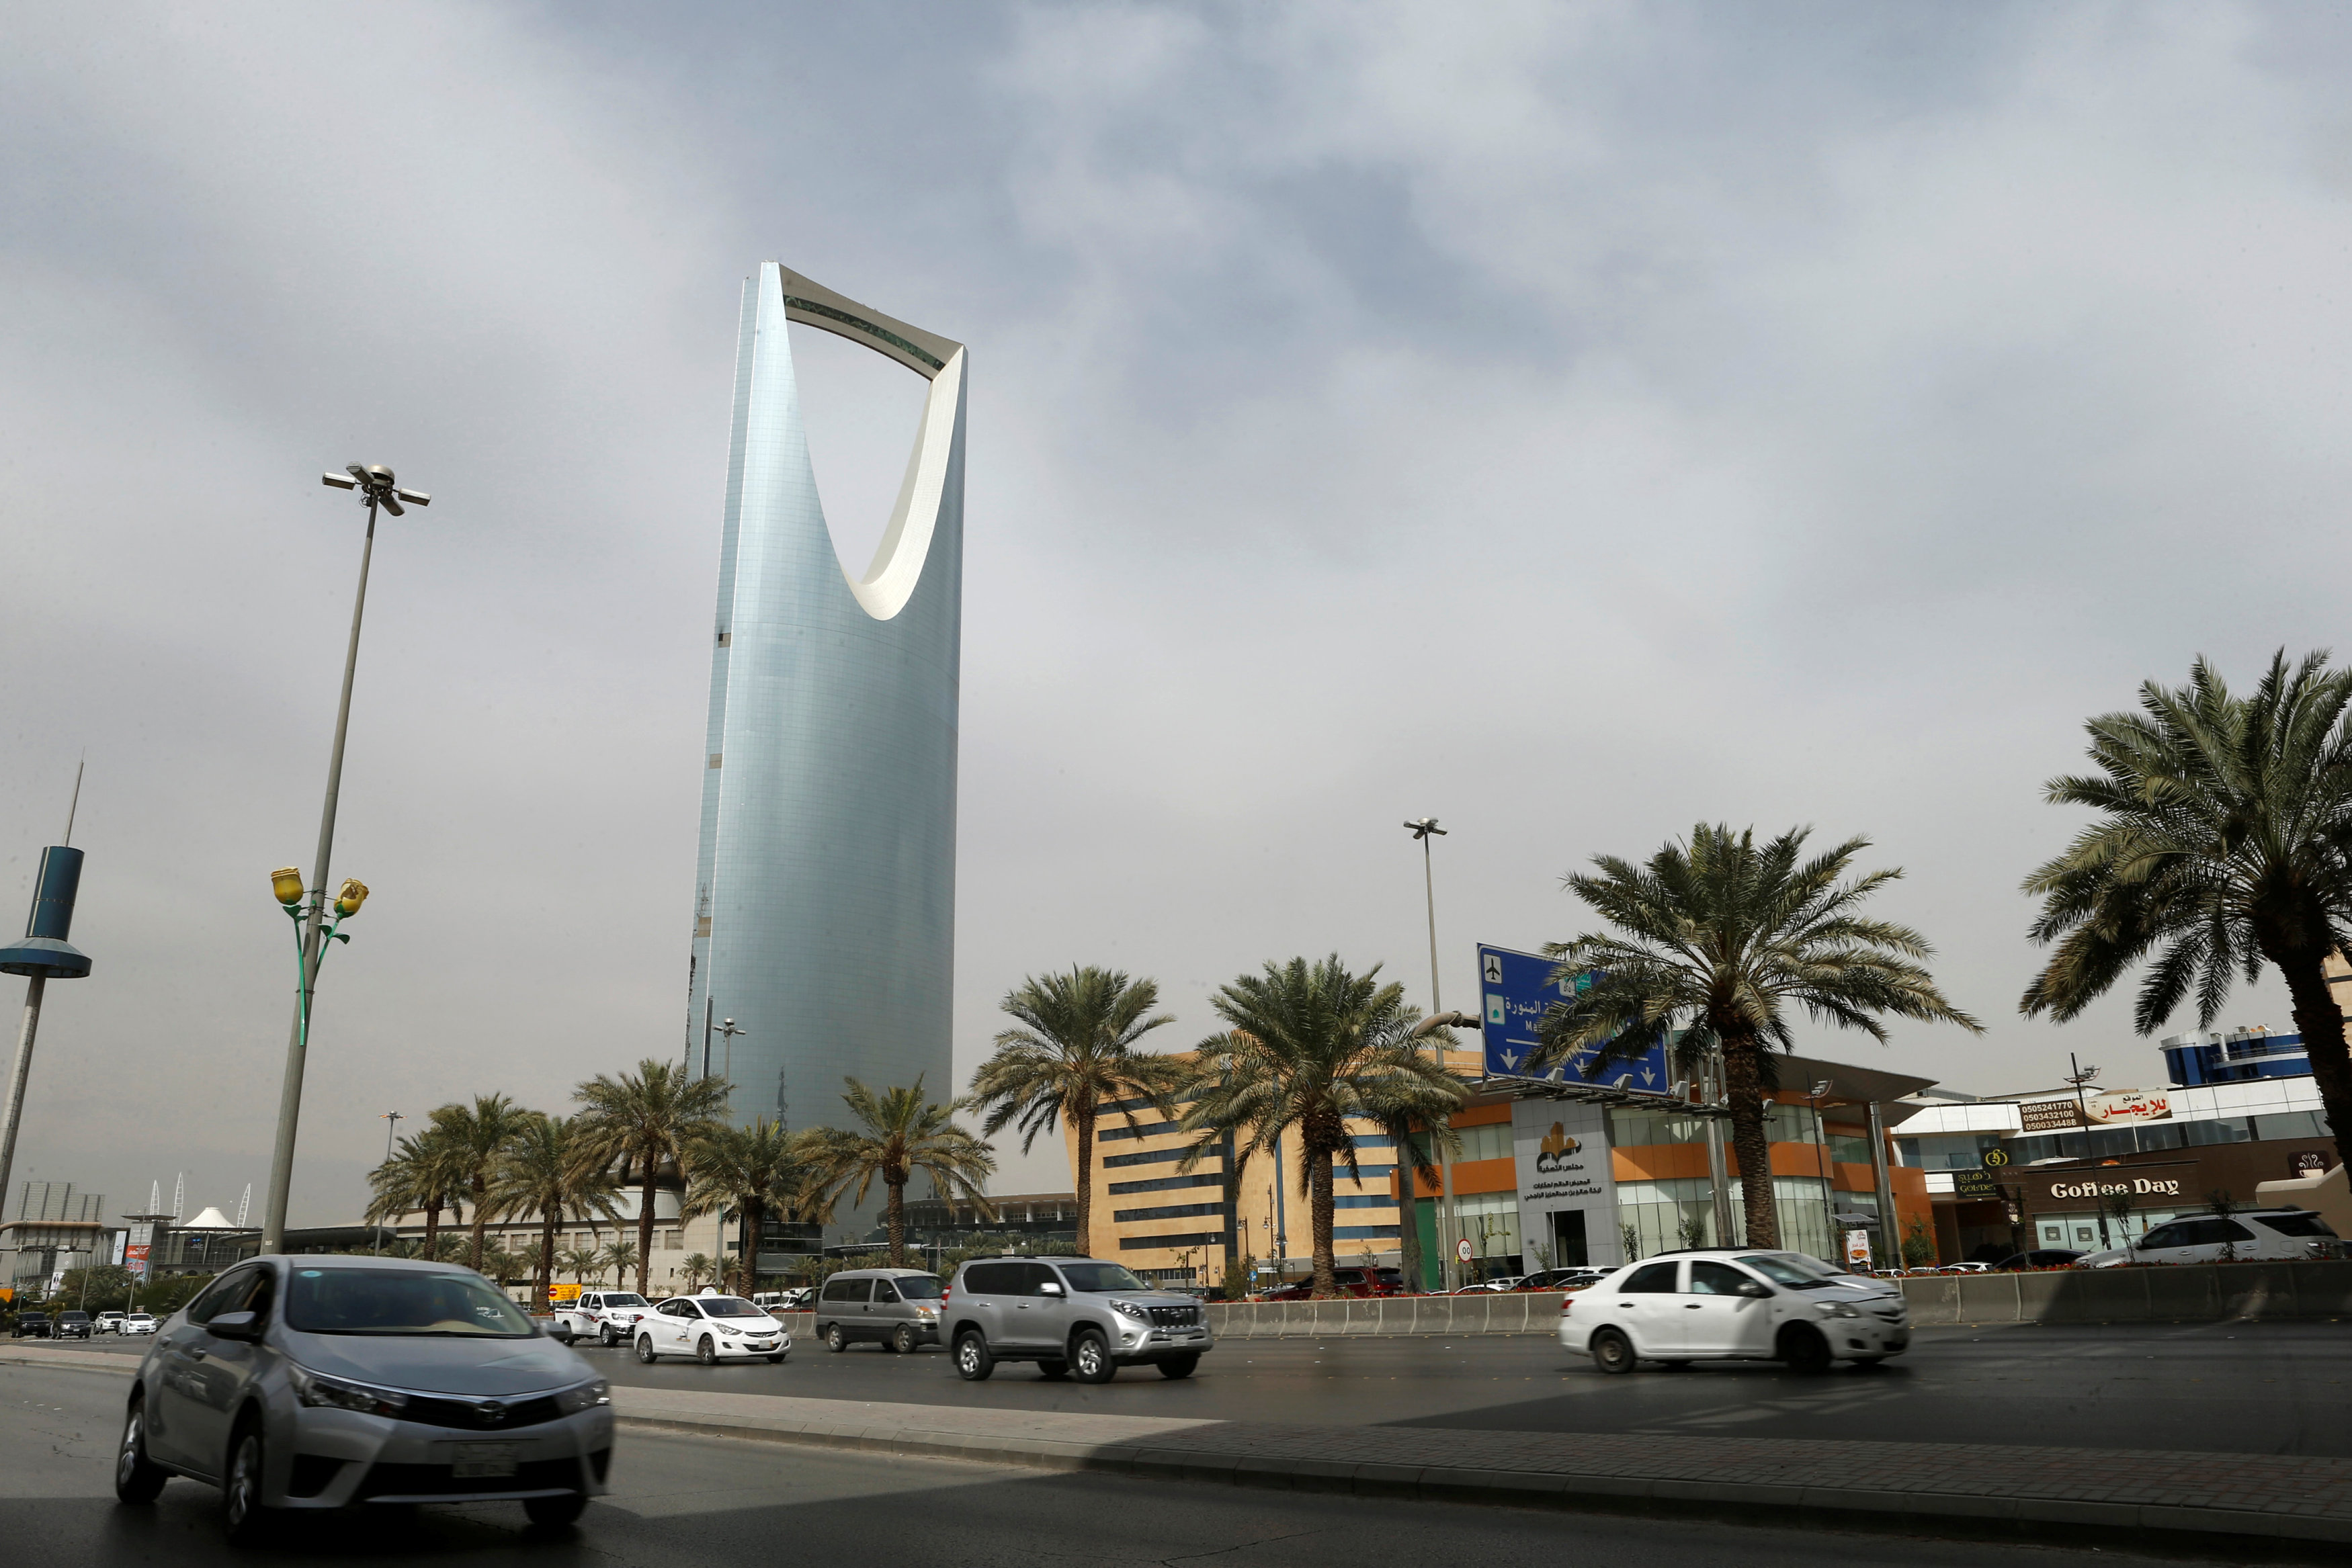 Cars drive past the Kingdom Centre Tower in Riyadh, Saudi Arabia, January 30, 2018. Credit: Reuters/Faisal Al Nasser